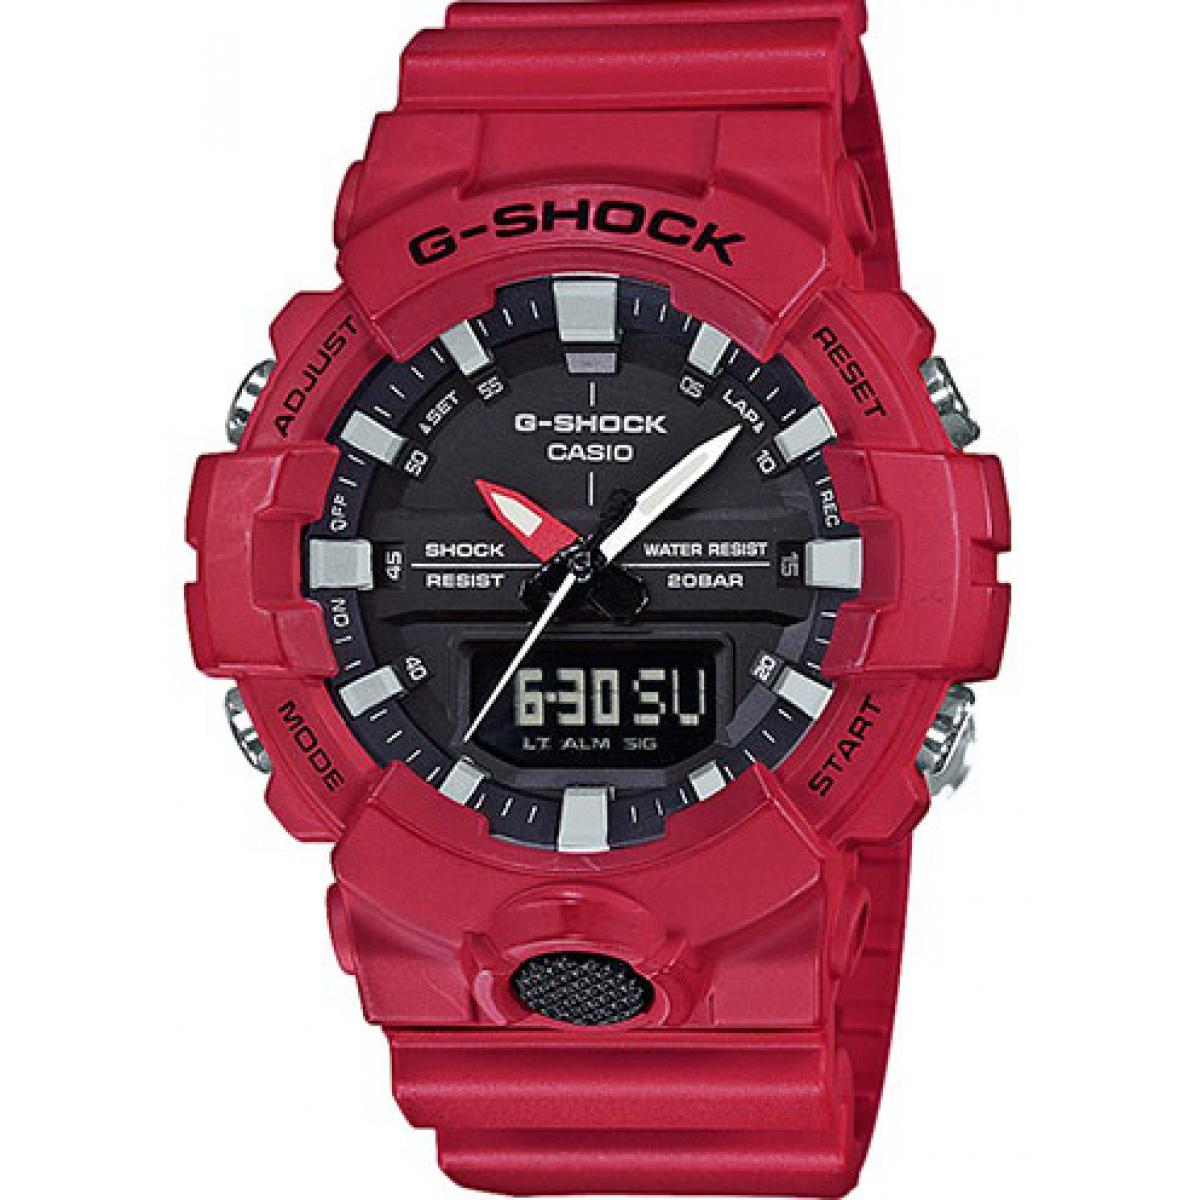 Montre Casio GA-800-4AER - Montre Chronographe Dateur Rouge Homme